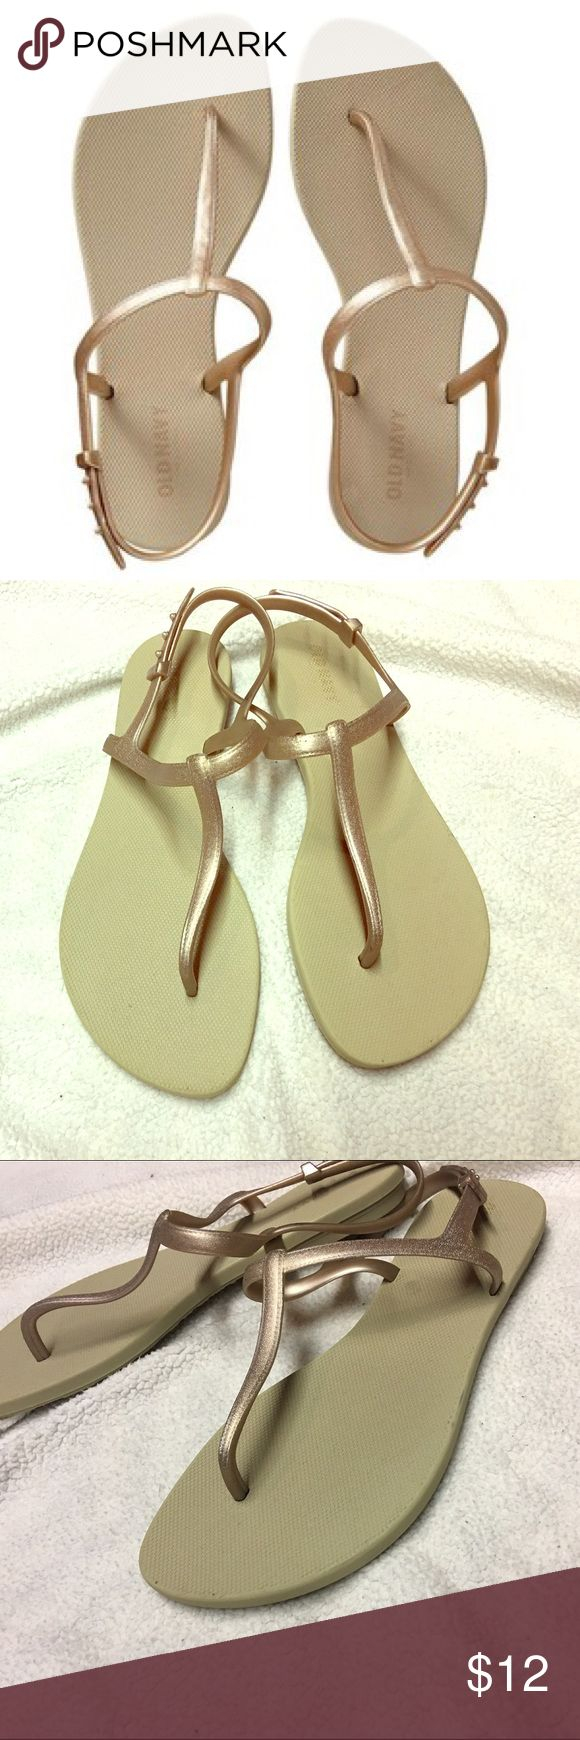 Gold Sandals Never worn! Perfect sandals for summer because they are a rubber material so water proof and easy to clean! Most reasonable offers accepted, or I love to bundle so check out the rest of my closet! Old Navy Shoes Sandals